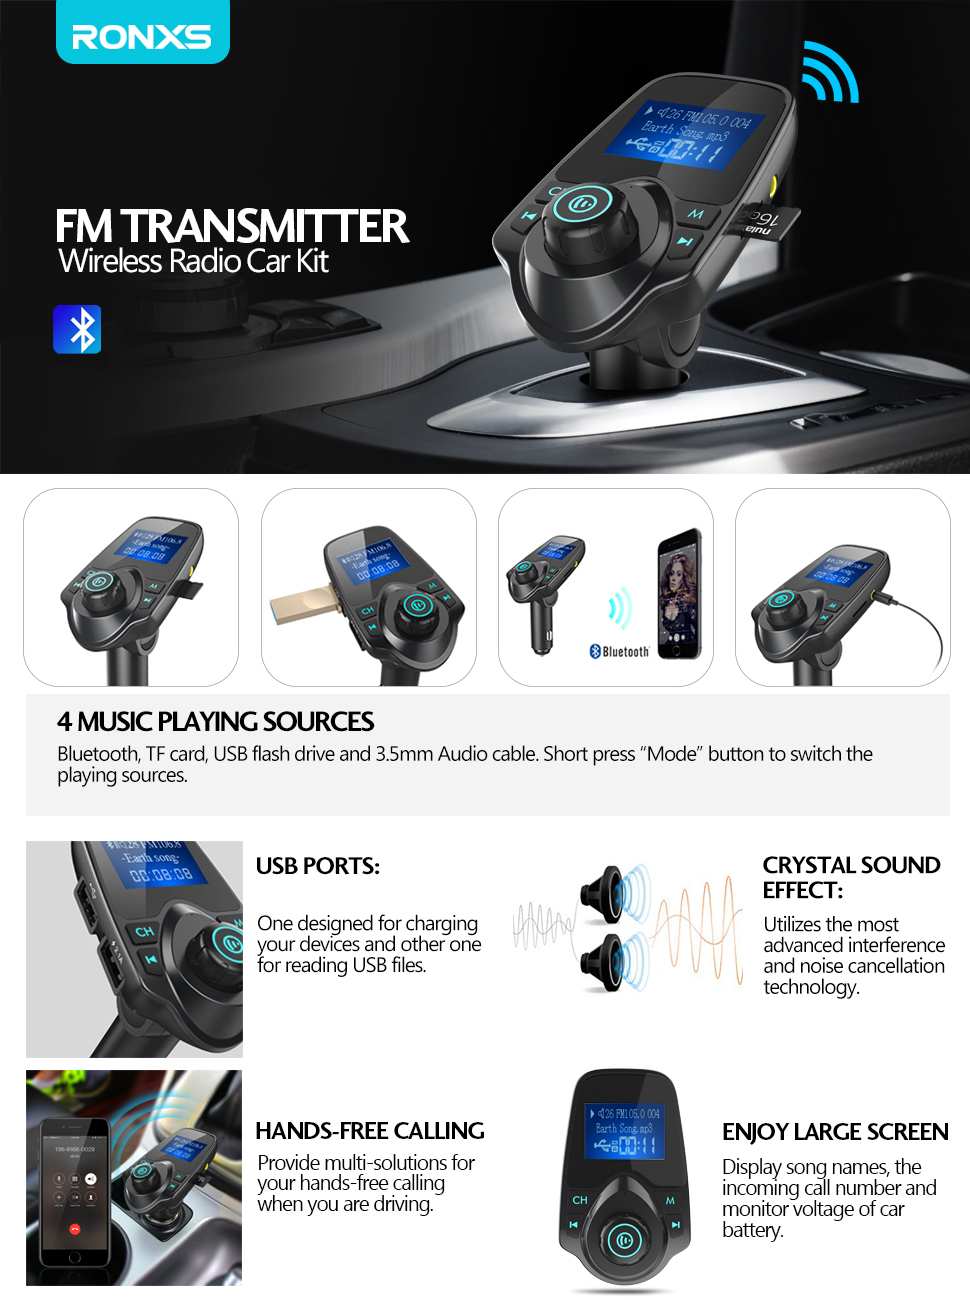 Fm Transmitter Ronxs Bluetooth Wireless This Tx Is About The Simplest And Most Basic Smartphones Could Be Connected To Through Then Streamed